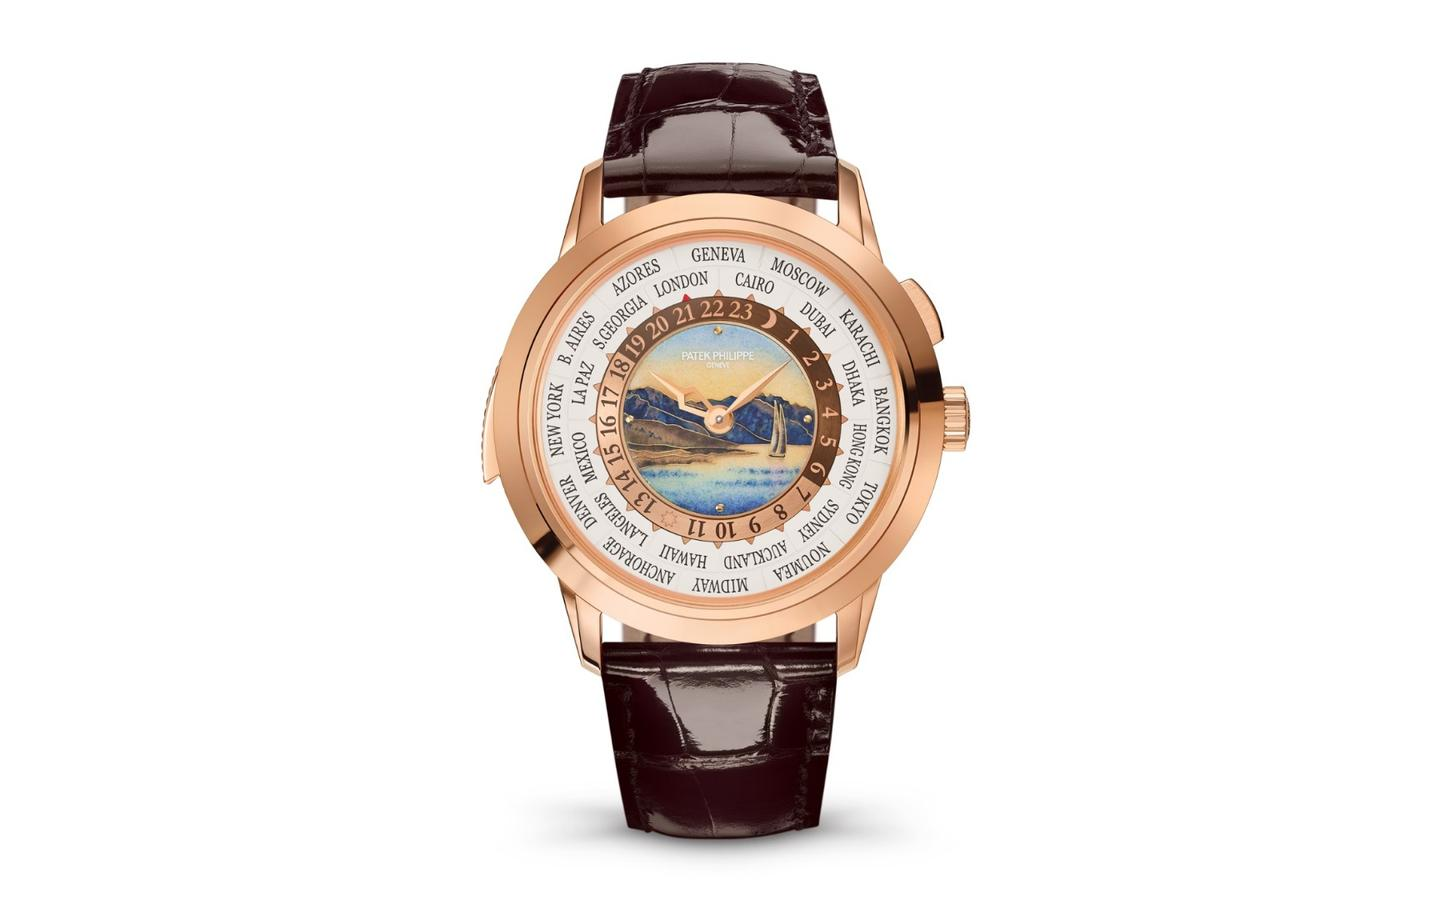 The Patek Phillipe World Time Repeater combines world time and repeater functions in a production mechanicalwristwatch